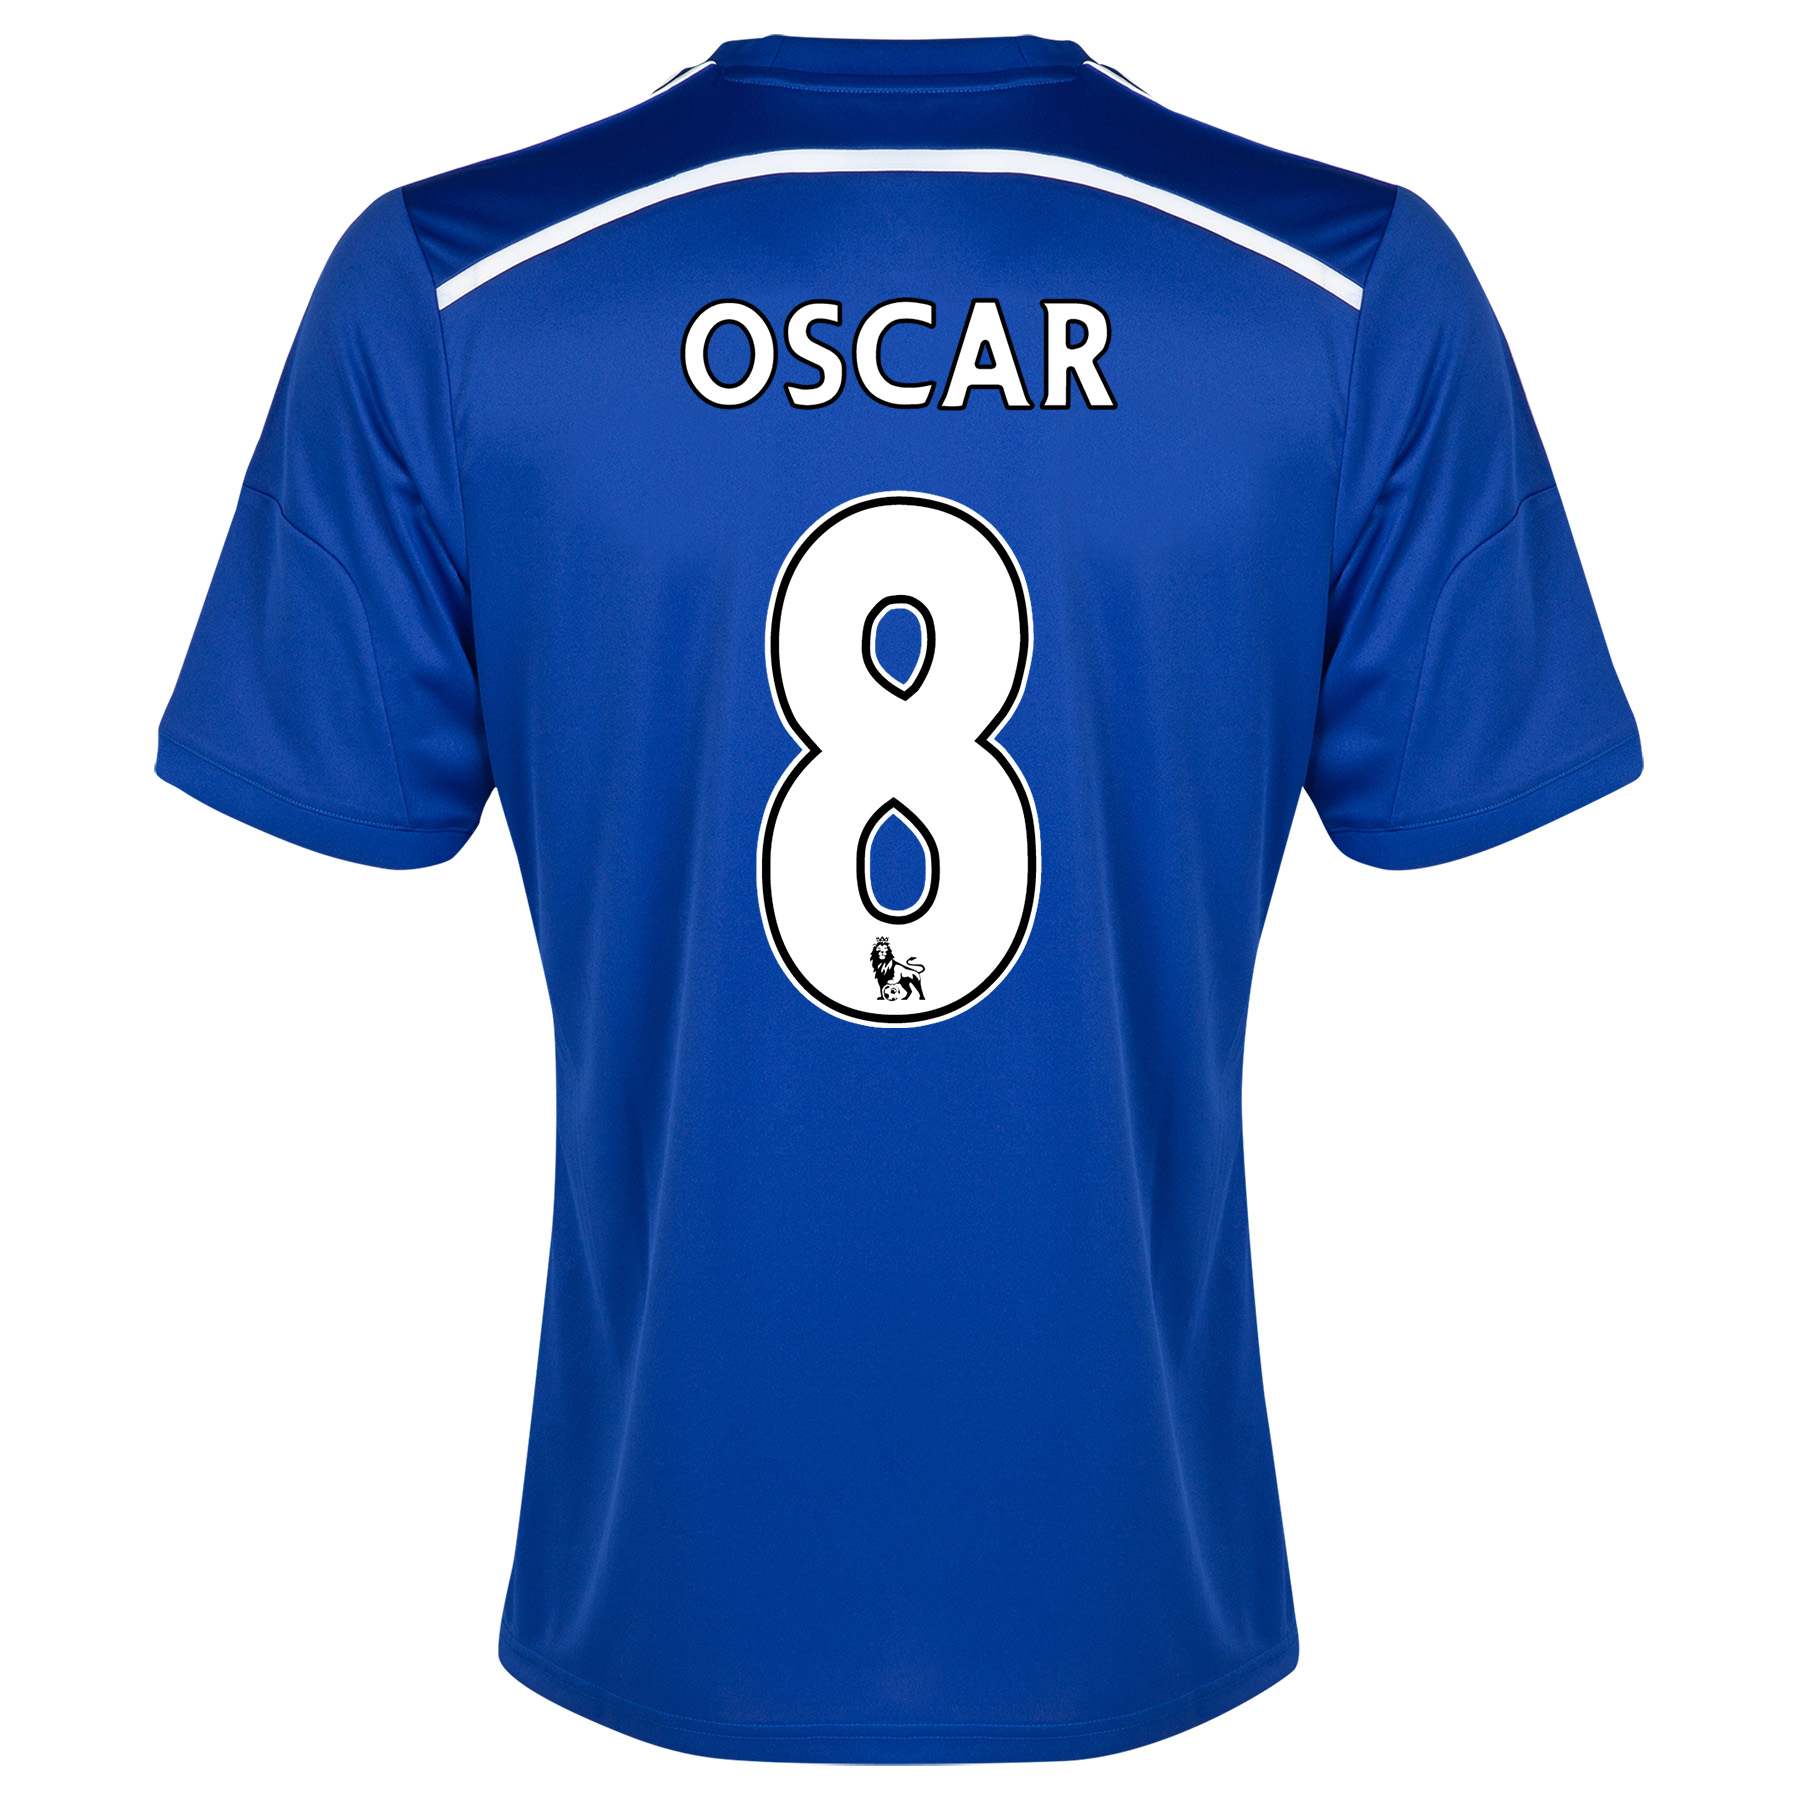 Chelsea Home Shirt 2014/15 - Outsize Blue with Oscar 11 printing